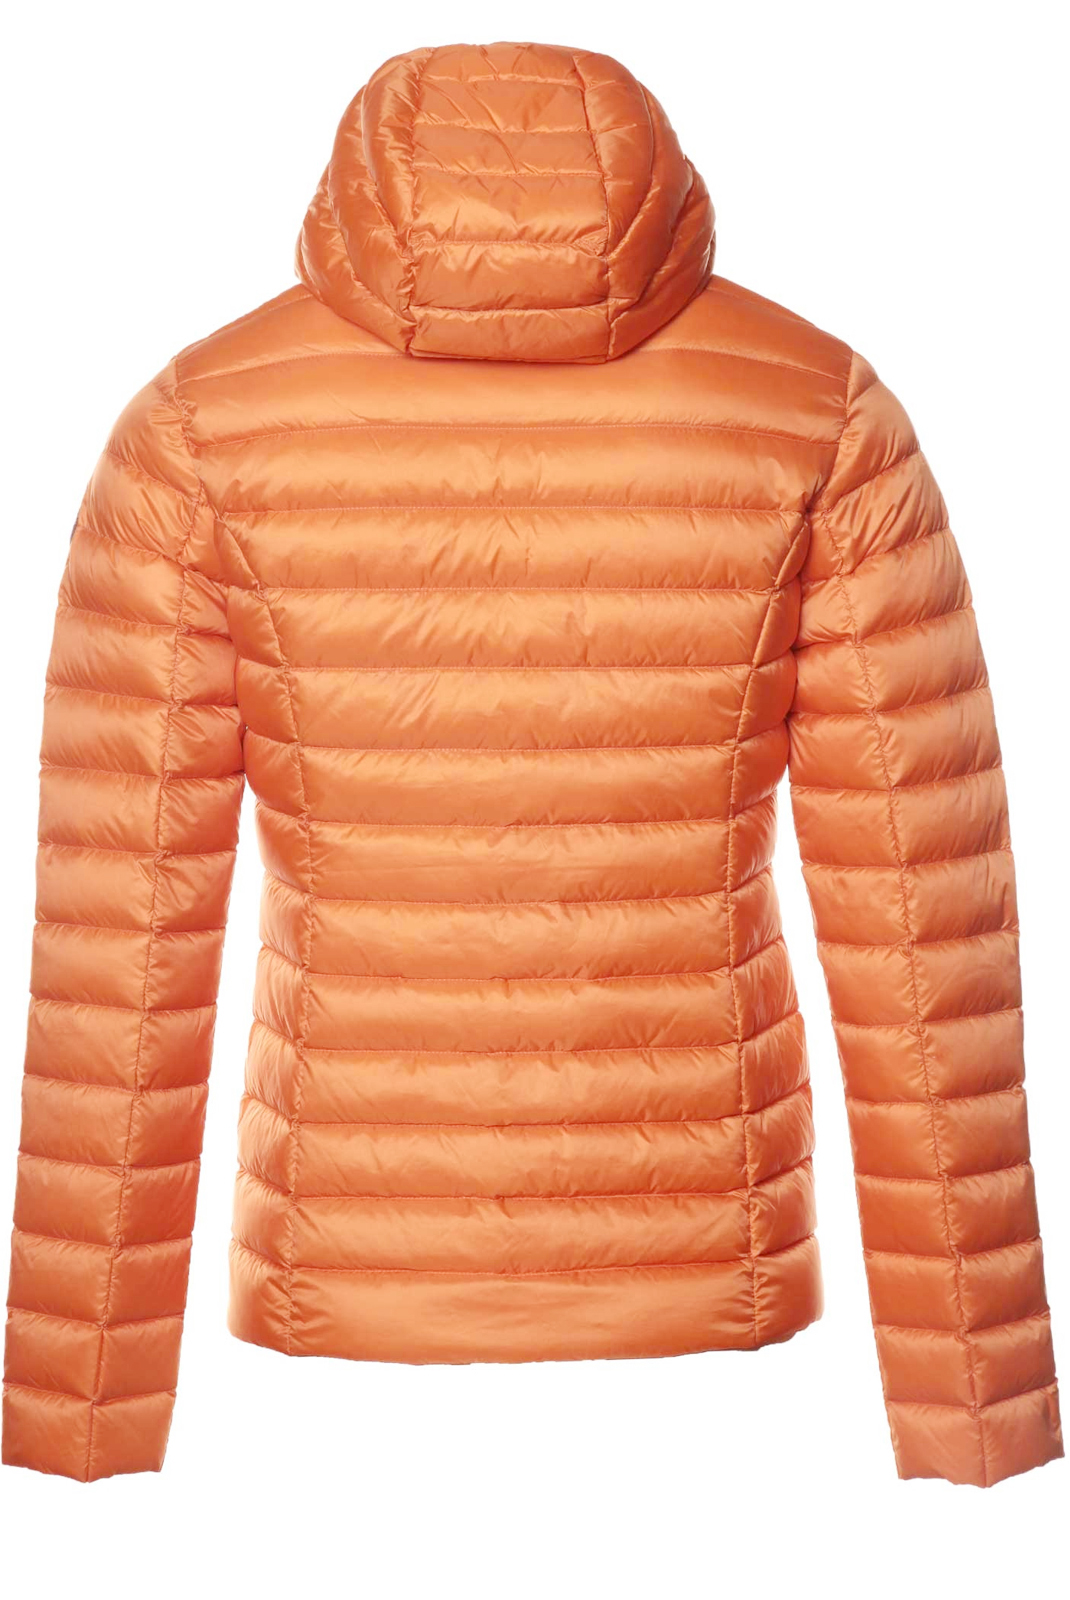 Blouson  Just over the top CLOE 5900 707 (2) CORAIL